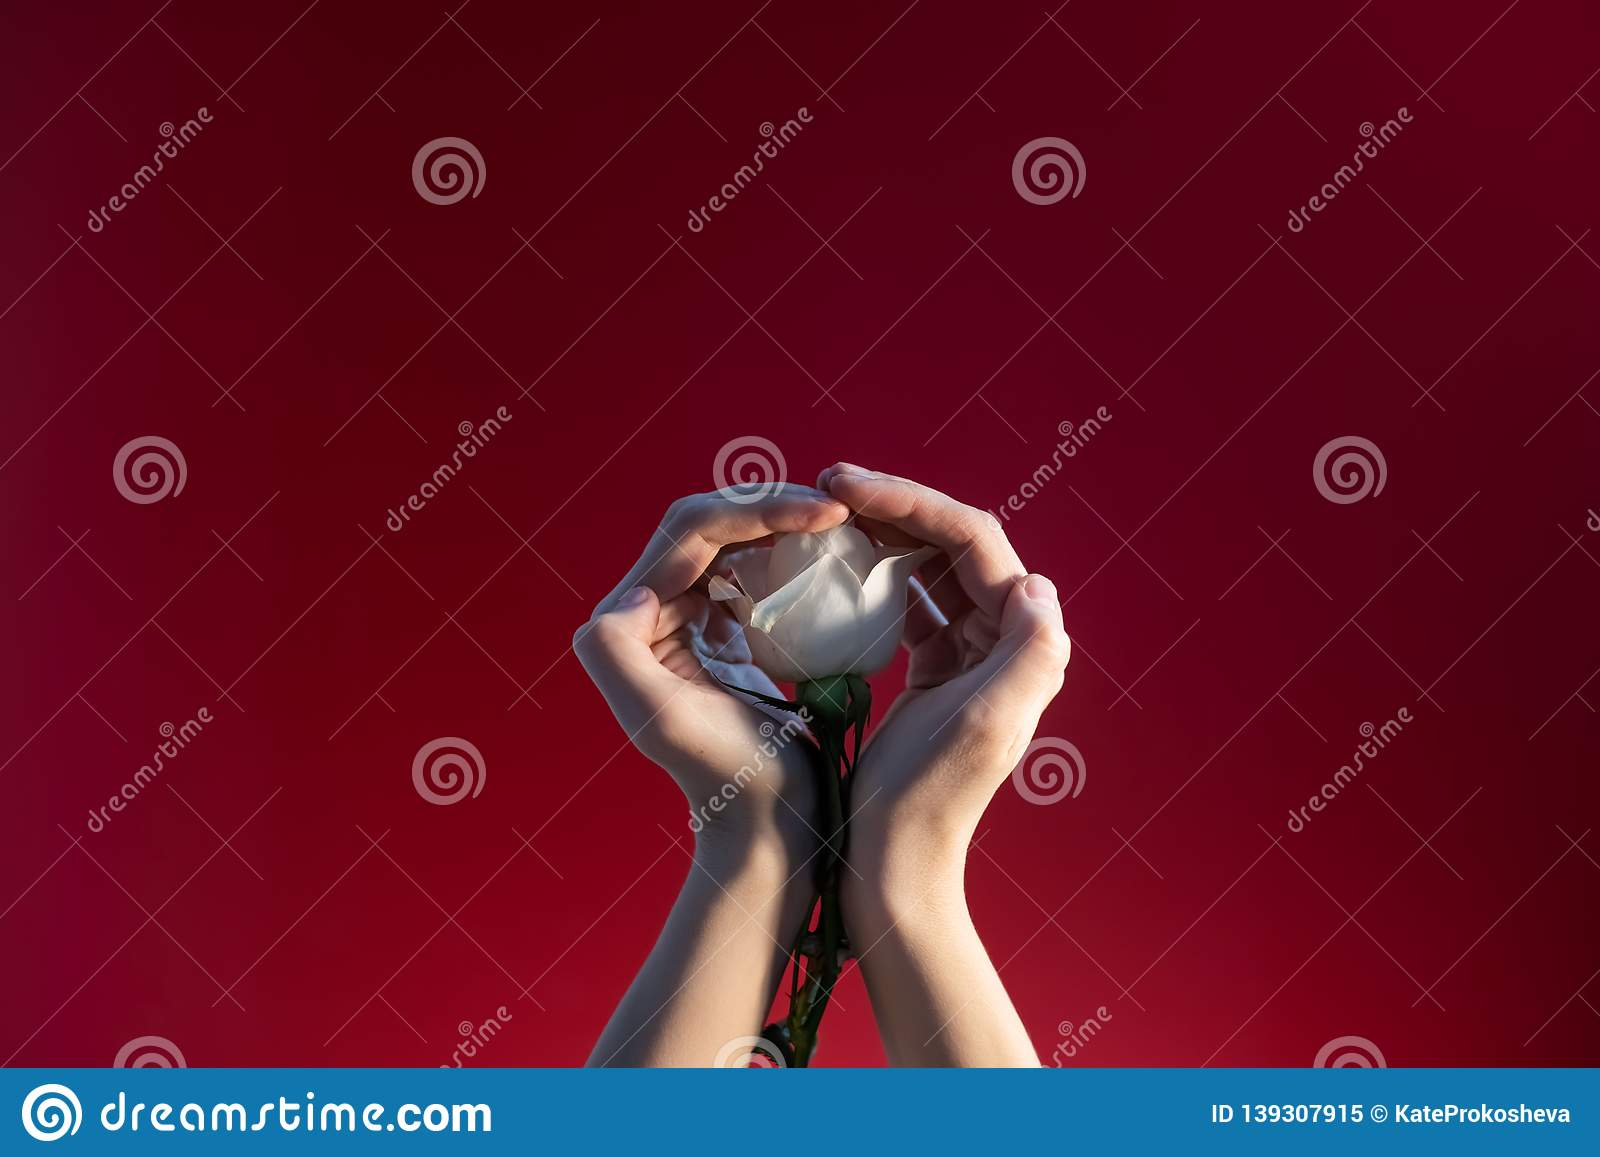 Woman`s hands with a rose on a red background